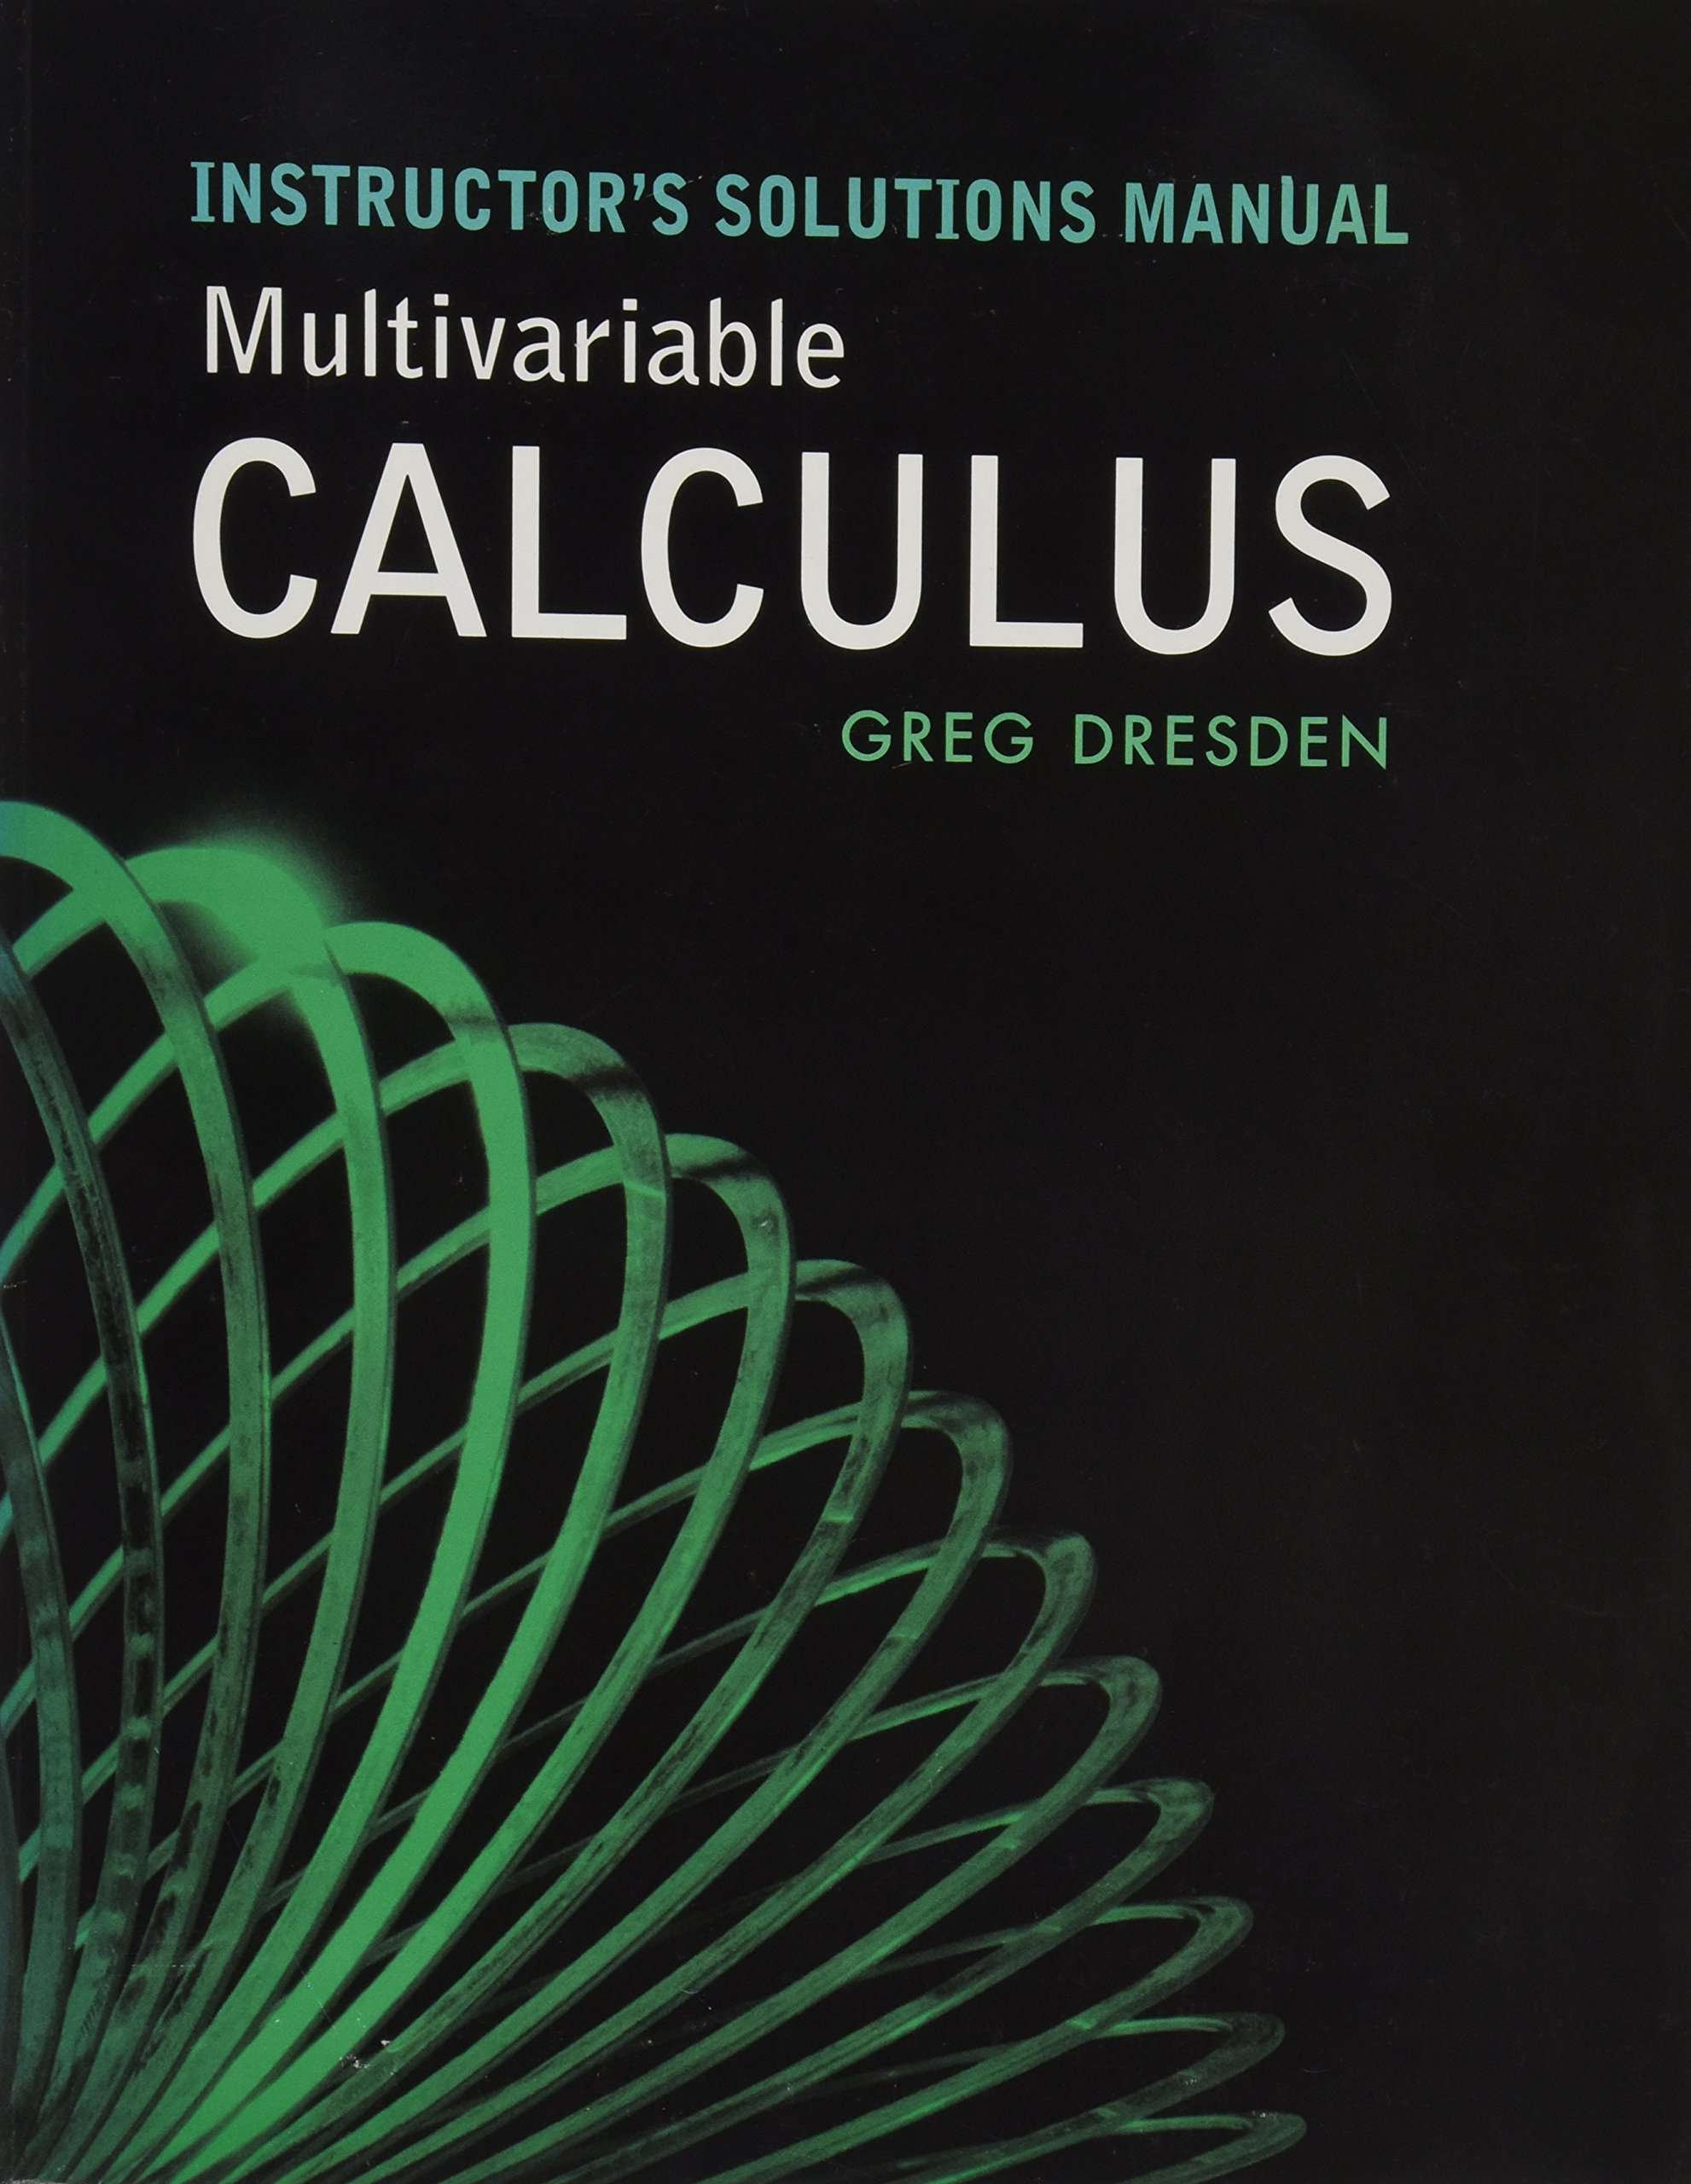 instructor s solutions manual multivariable calculus greg dresden rh amazon com james stewart multivariable calculus solutions manual pdf multivariable calculus solutions manual